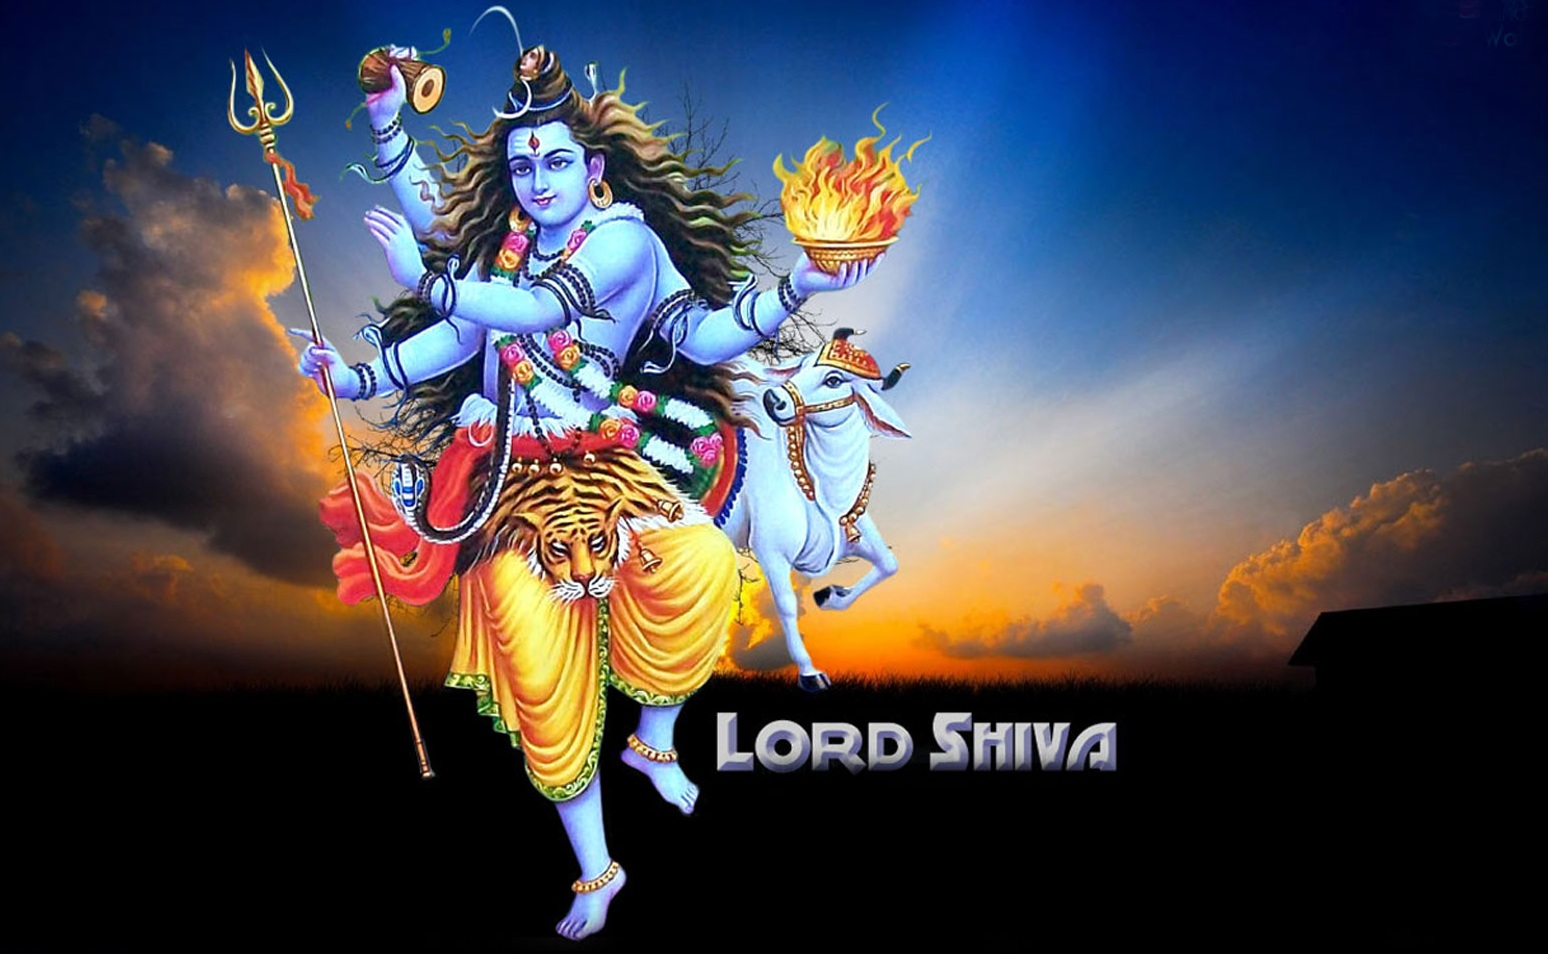 Lord Shiva Desktop Wallpapers Hd: Lord Shiva Images [Wallpapers] & God Shiva Photos In HD